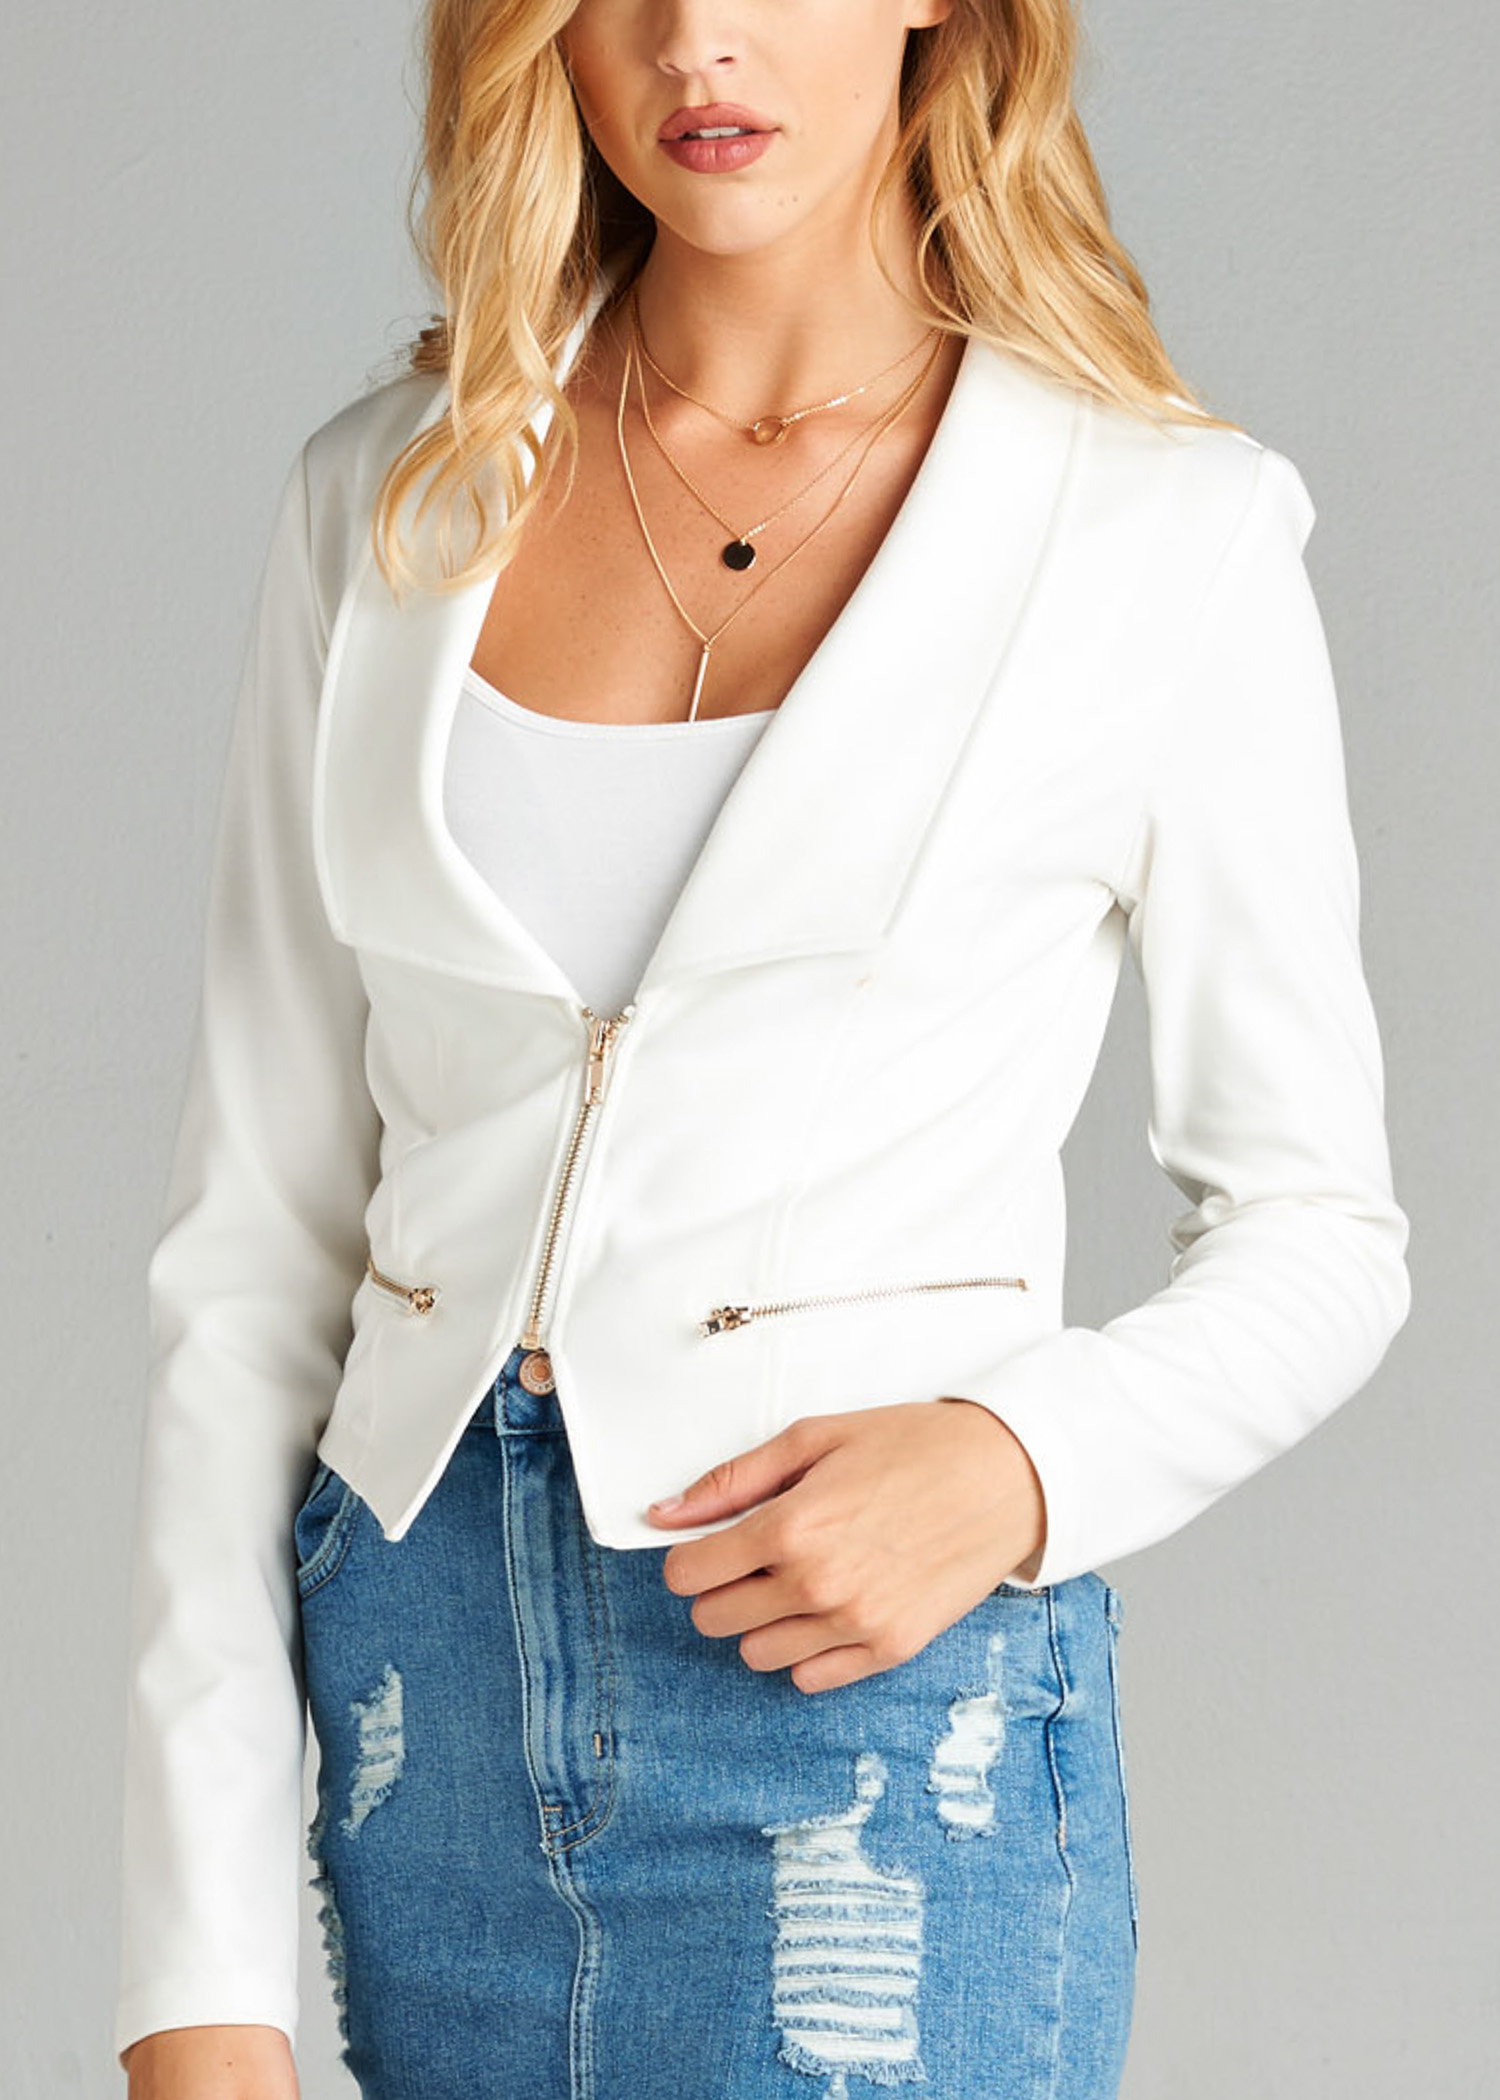 Womens Juniors Stylish Fashion Careerwear Solid White Long Sleeve Zip-Up Moto Jacket 41198V